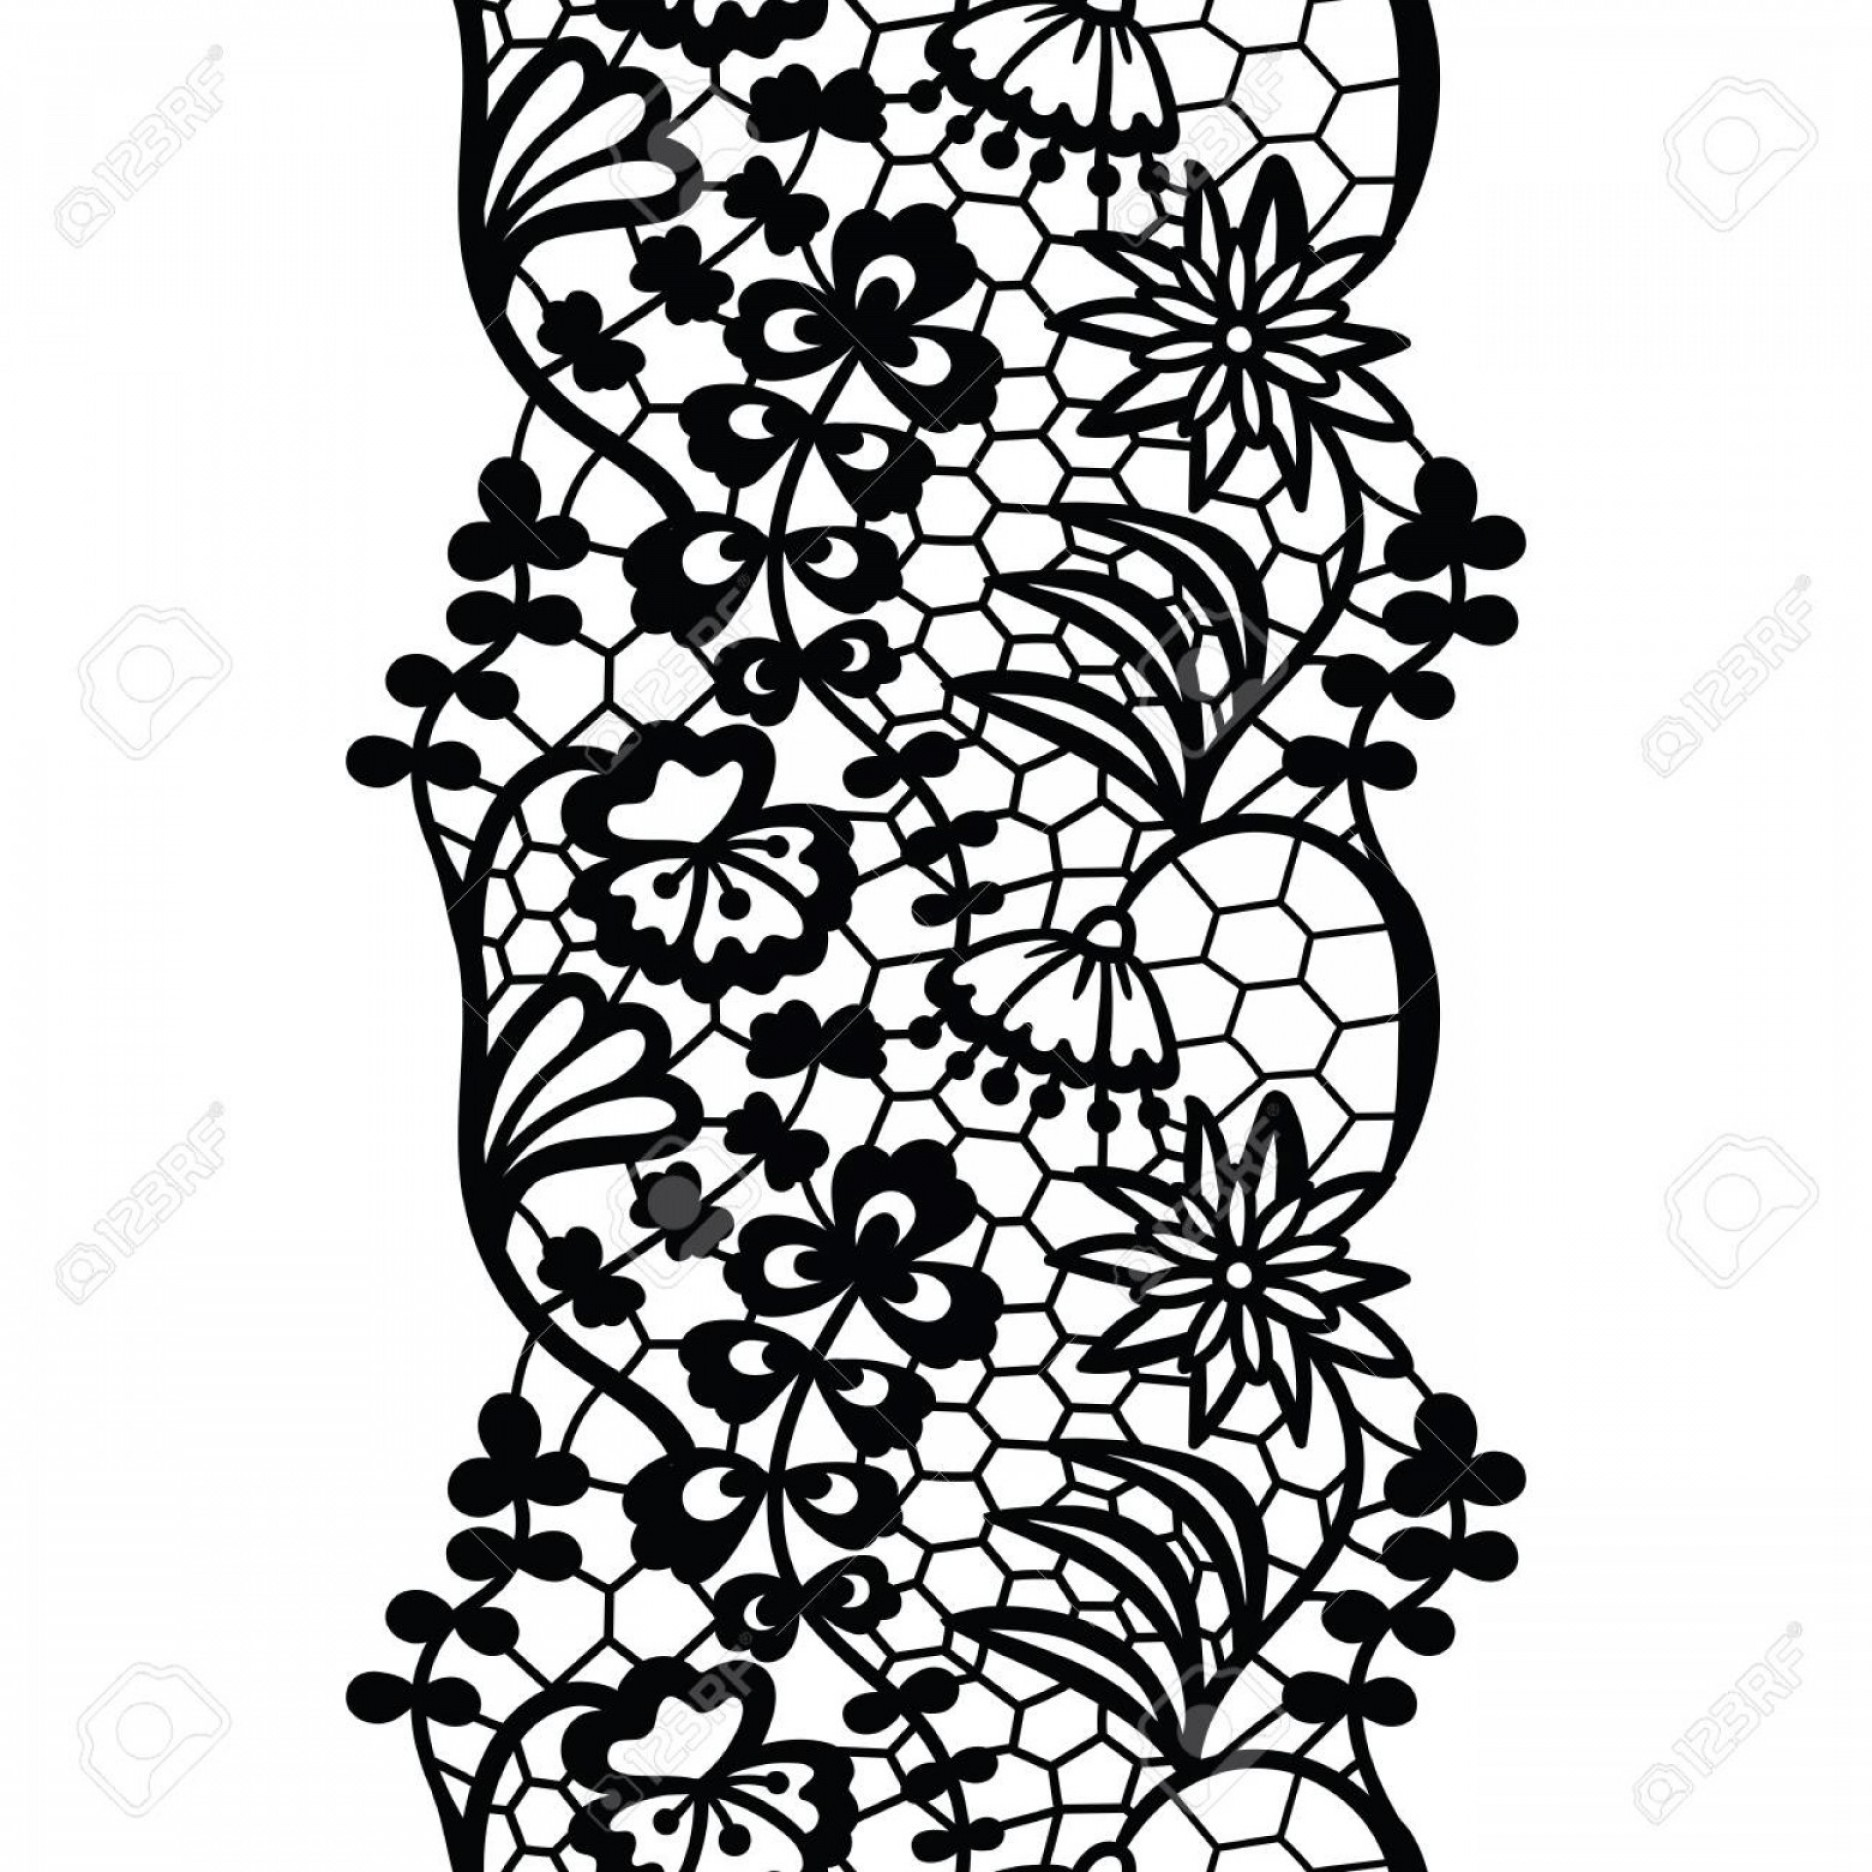 1872x1872 Photostock Vector Vintage Lack Lace Trim With Scalloped Edges And